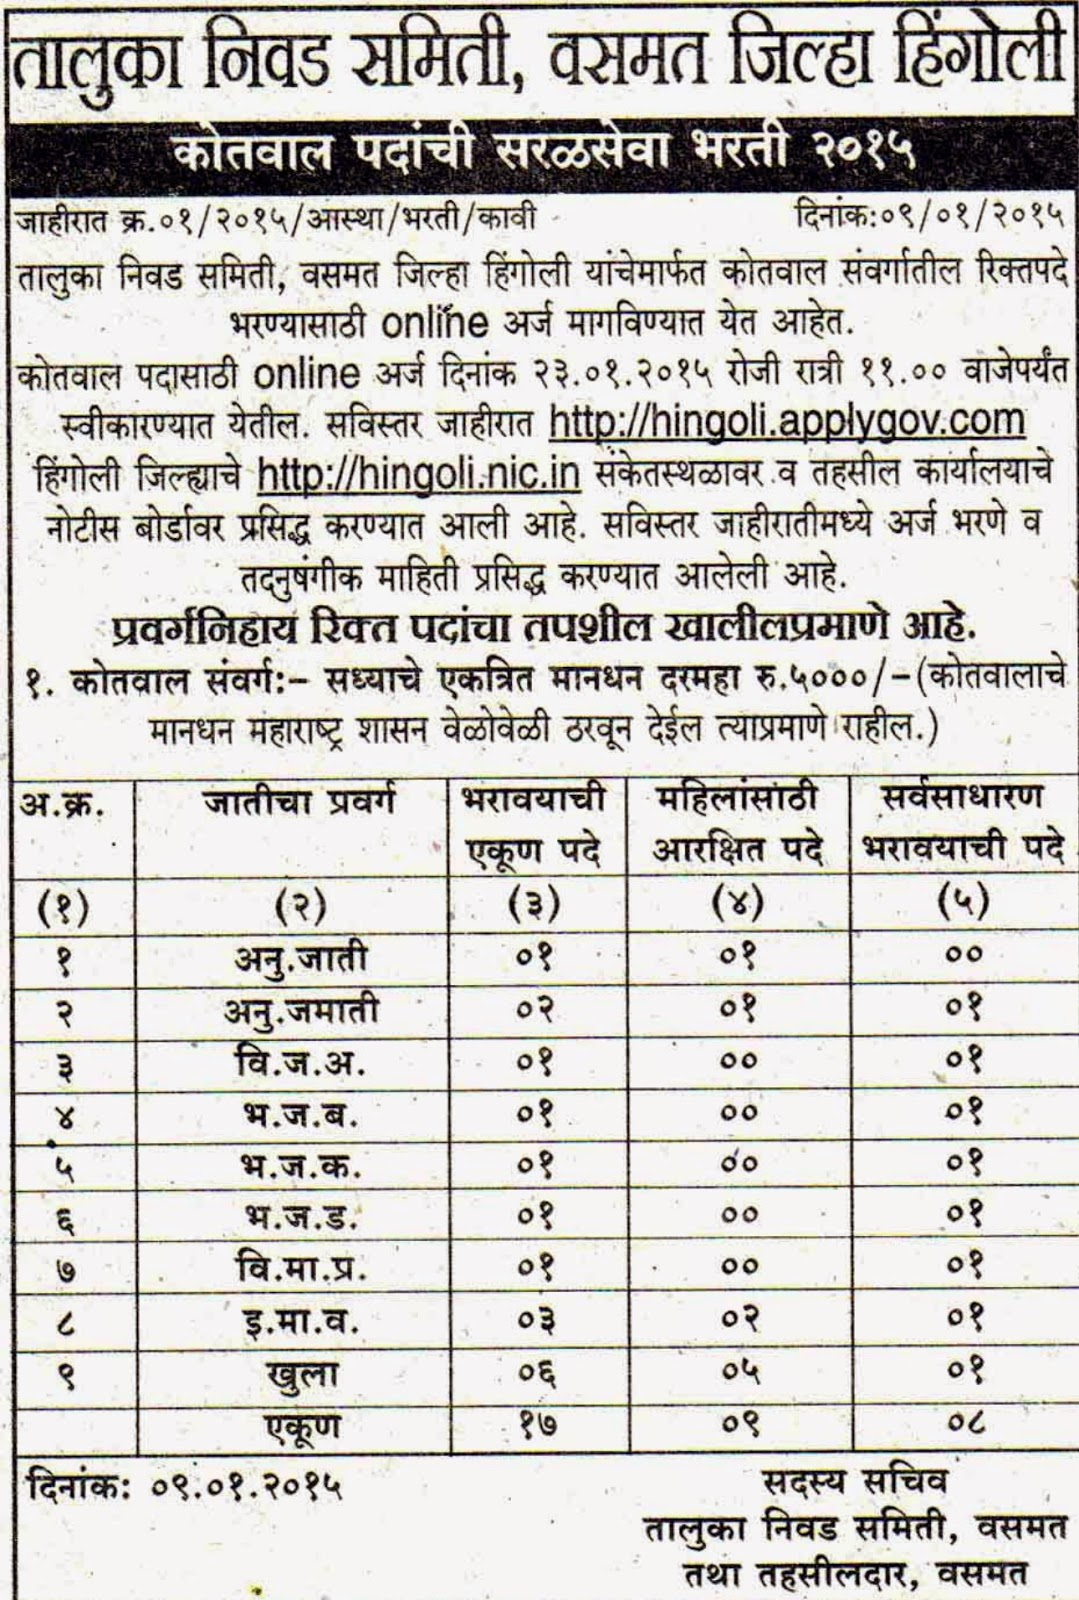 Hingoli Kotwal Recruitment - Bharti 2015